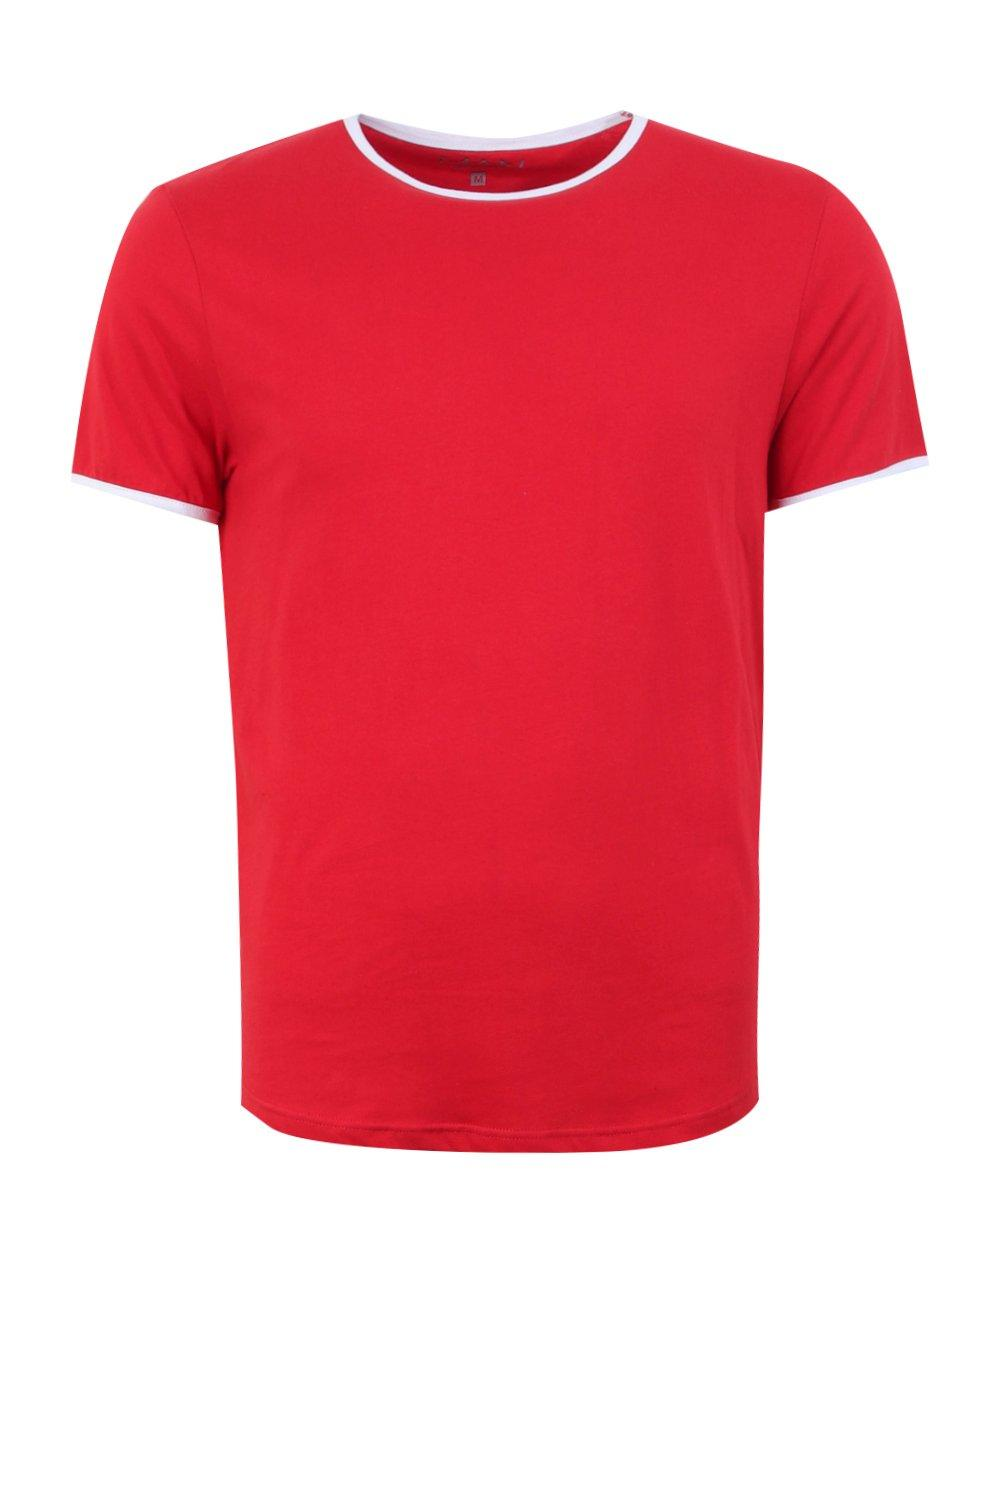 boohooMAN red Ringer T-Shirt With Curve Hem